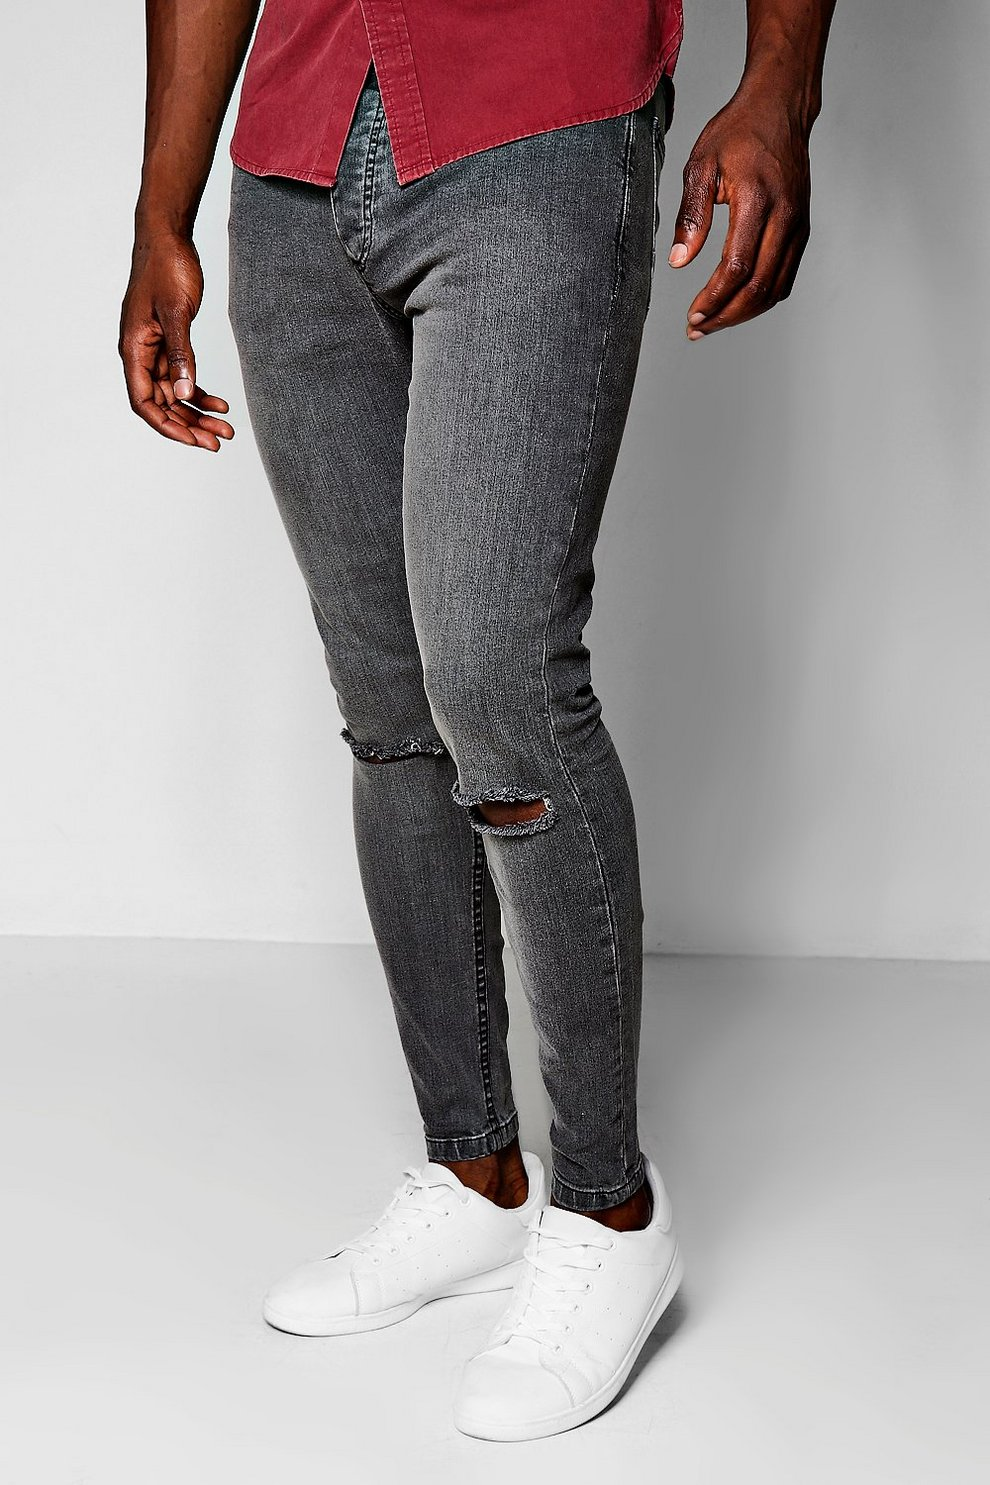 62f1ca802871 Charcoal Skinny Fit Jeans With Ripped Knees | Boohoo